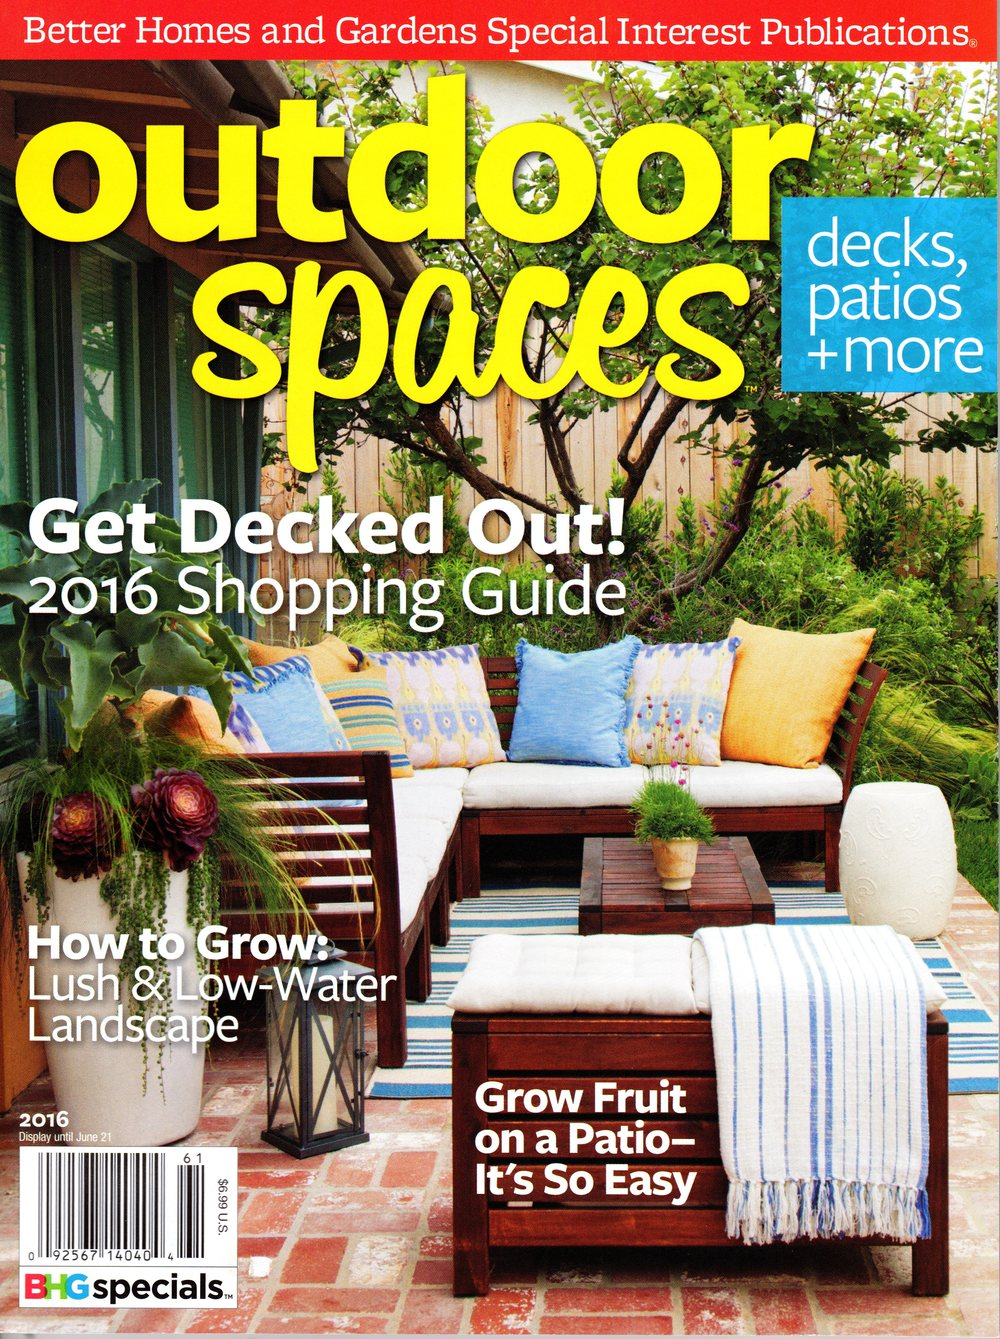 BETTER HOMES AND GARDENS' OUTDOOR SPACES MAGAZINE